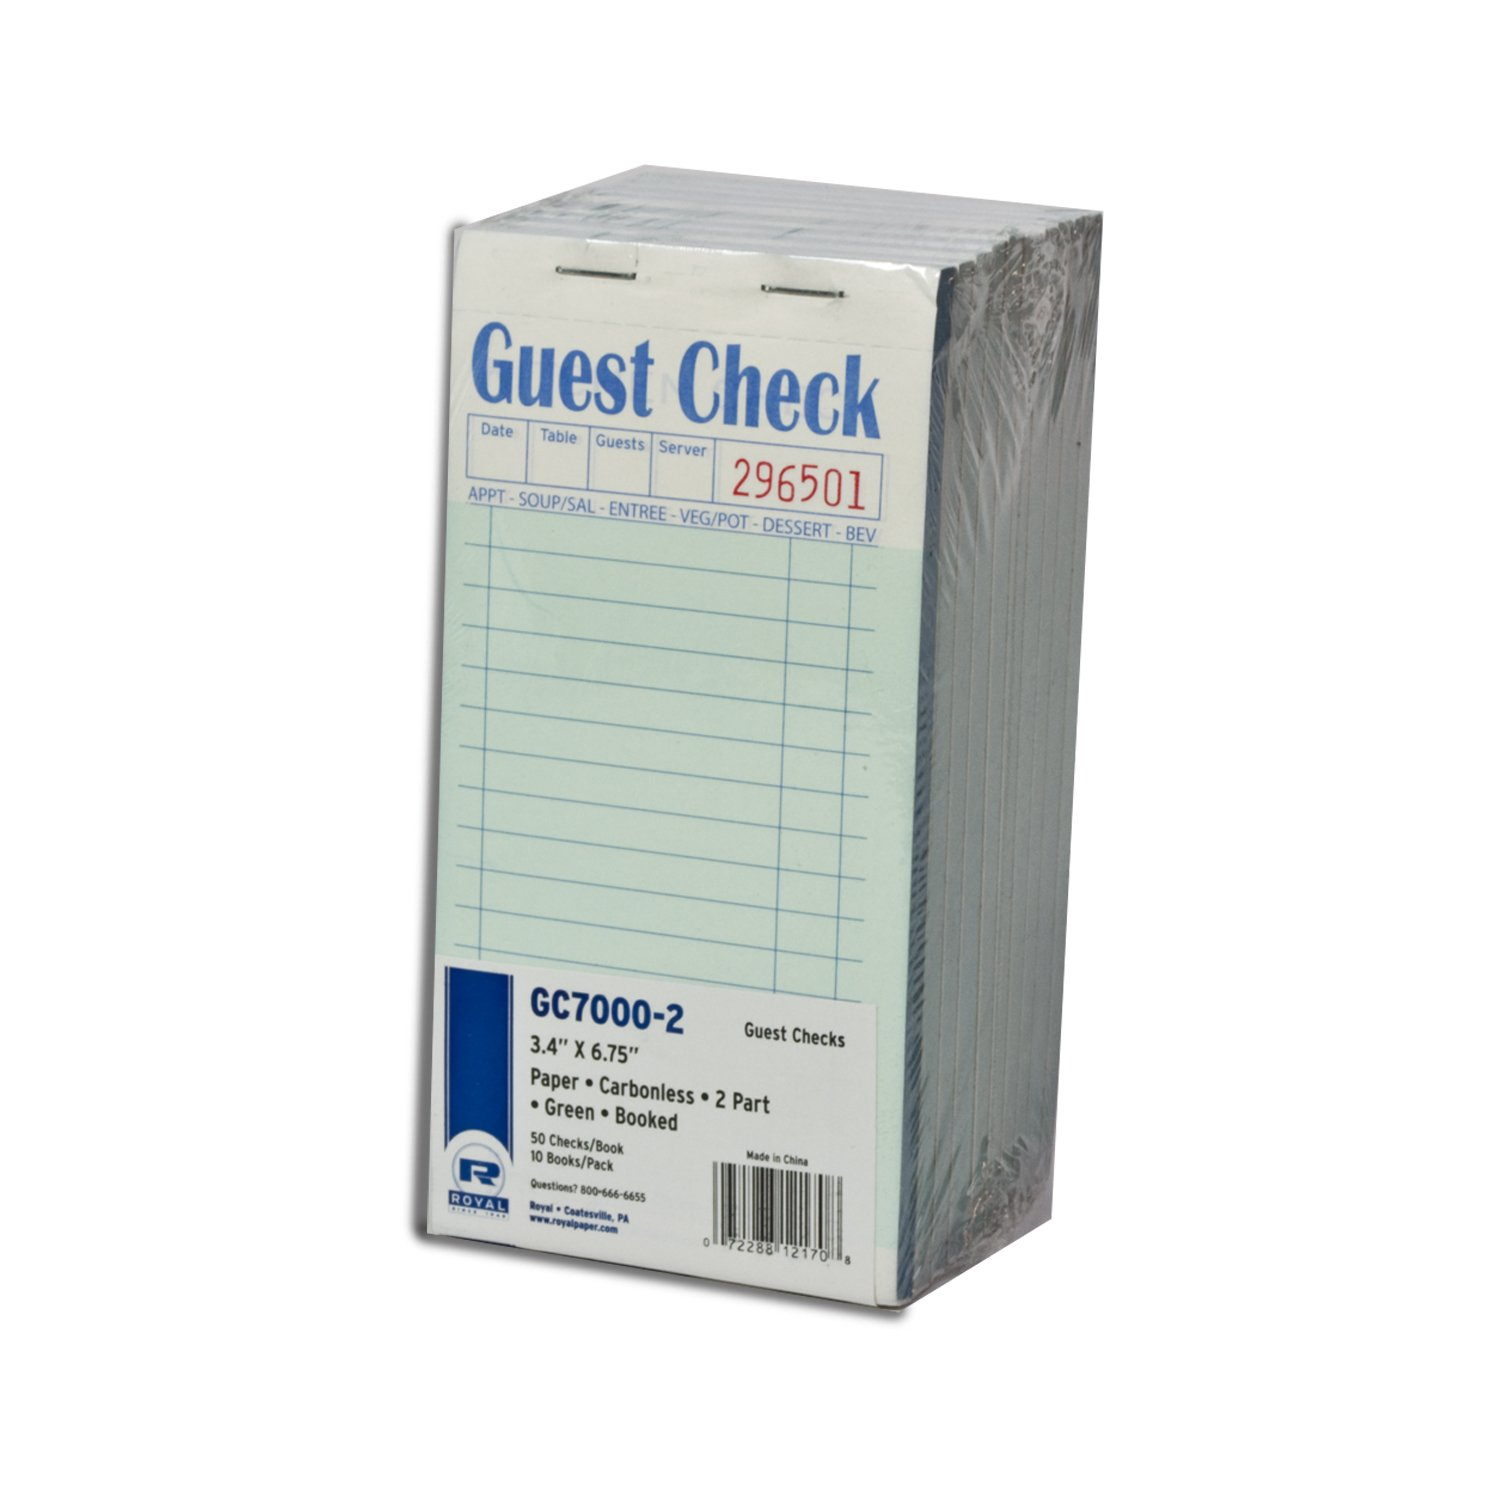 Royal Green Guest Check Paper, Carbonless 2 Part Booked, Package of 10 Books